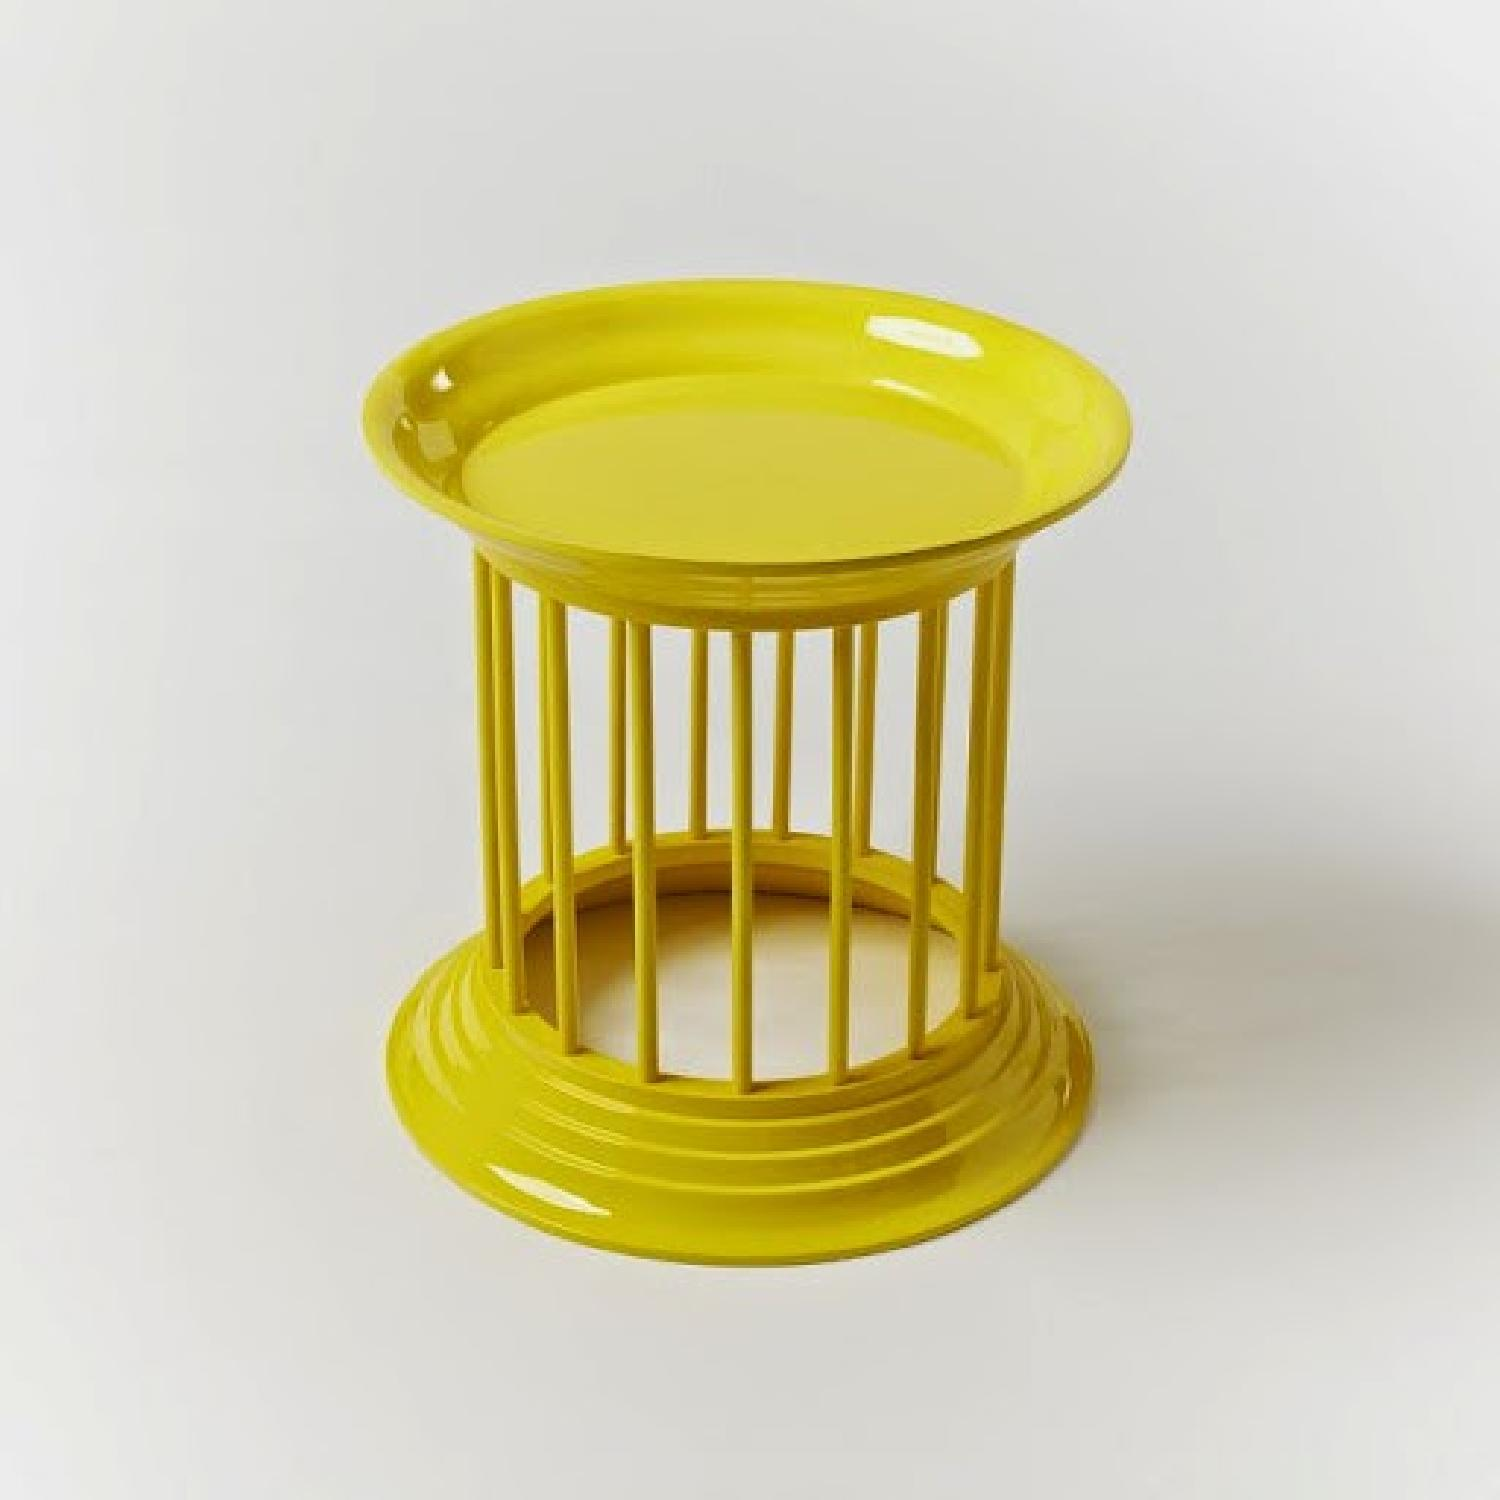 West Elm Gates Gates Lacquer Side Tables in Lemon Yellow - image-4